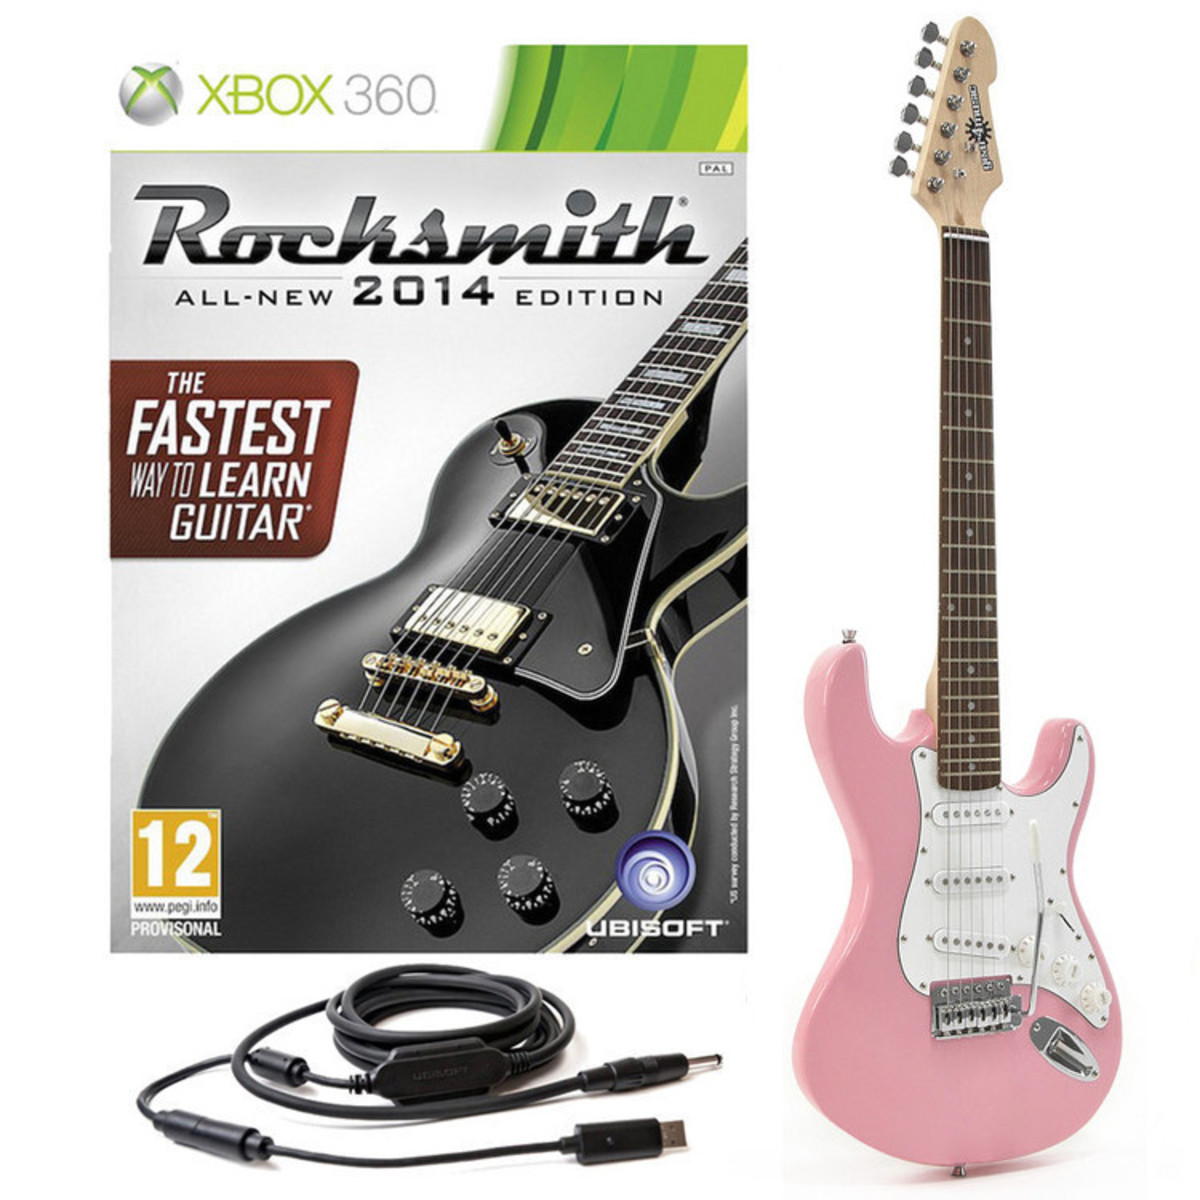 disc rocksmith 2014 xbox 360 3 4 la electric guitar pink gear4music. Black Bedroom Furniture Sets. Home Design Ideas